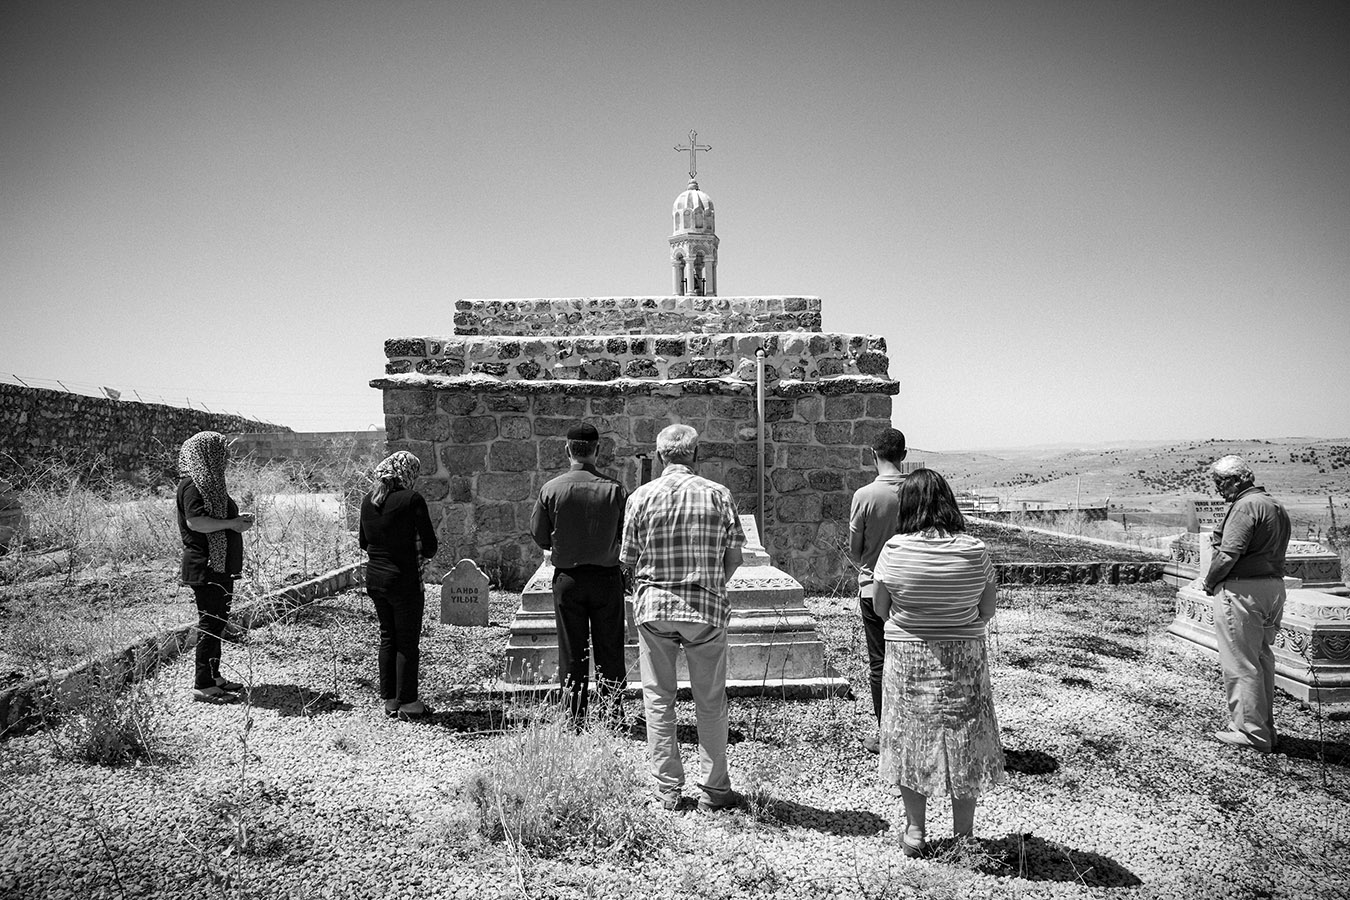 Syriacs who are visiting their village from abroad pray for their passed away ones at Aynwardo village at Mort Smuni Church,Tur Abdin region.The Syriacs of Tur Abdin are an ancient people from northern Mesopotamia that was among the first civilizations in the world to adopt Christianity. Also known as Assyrians or Arameans, they still speak the Aramaic language of Jesus Christ. Their homeland is a region in southeastern Turkey known as Tur Abdin (Mountain of the Servants of God). The struggles of an exiled Christian people trying to return to its homeland in order to save its ancient faith from assimilation and extinction.The photos were taken our research trips to the Tur Abdin region in the previous years.